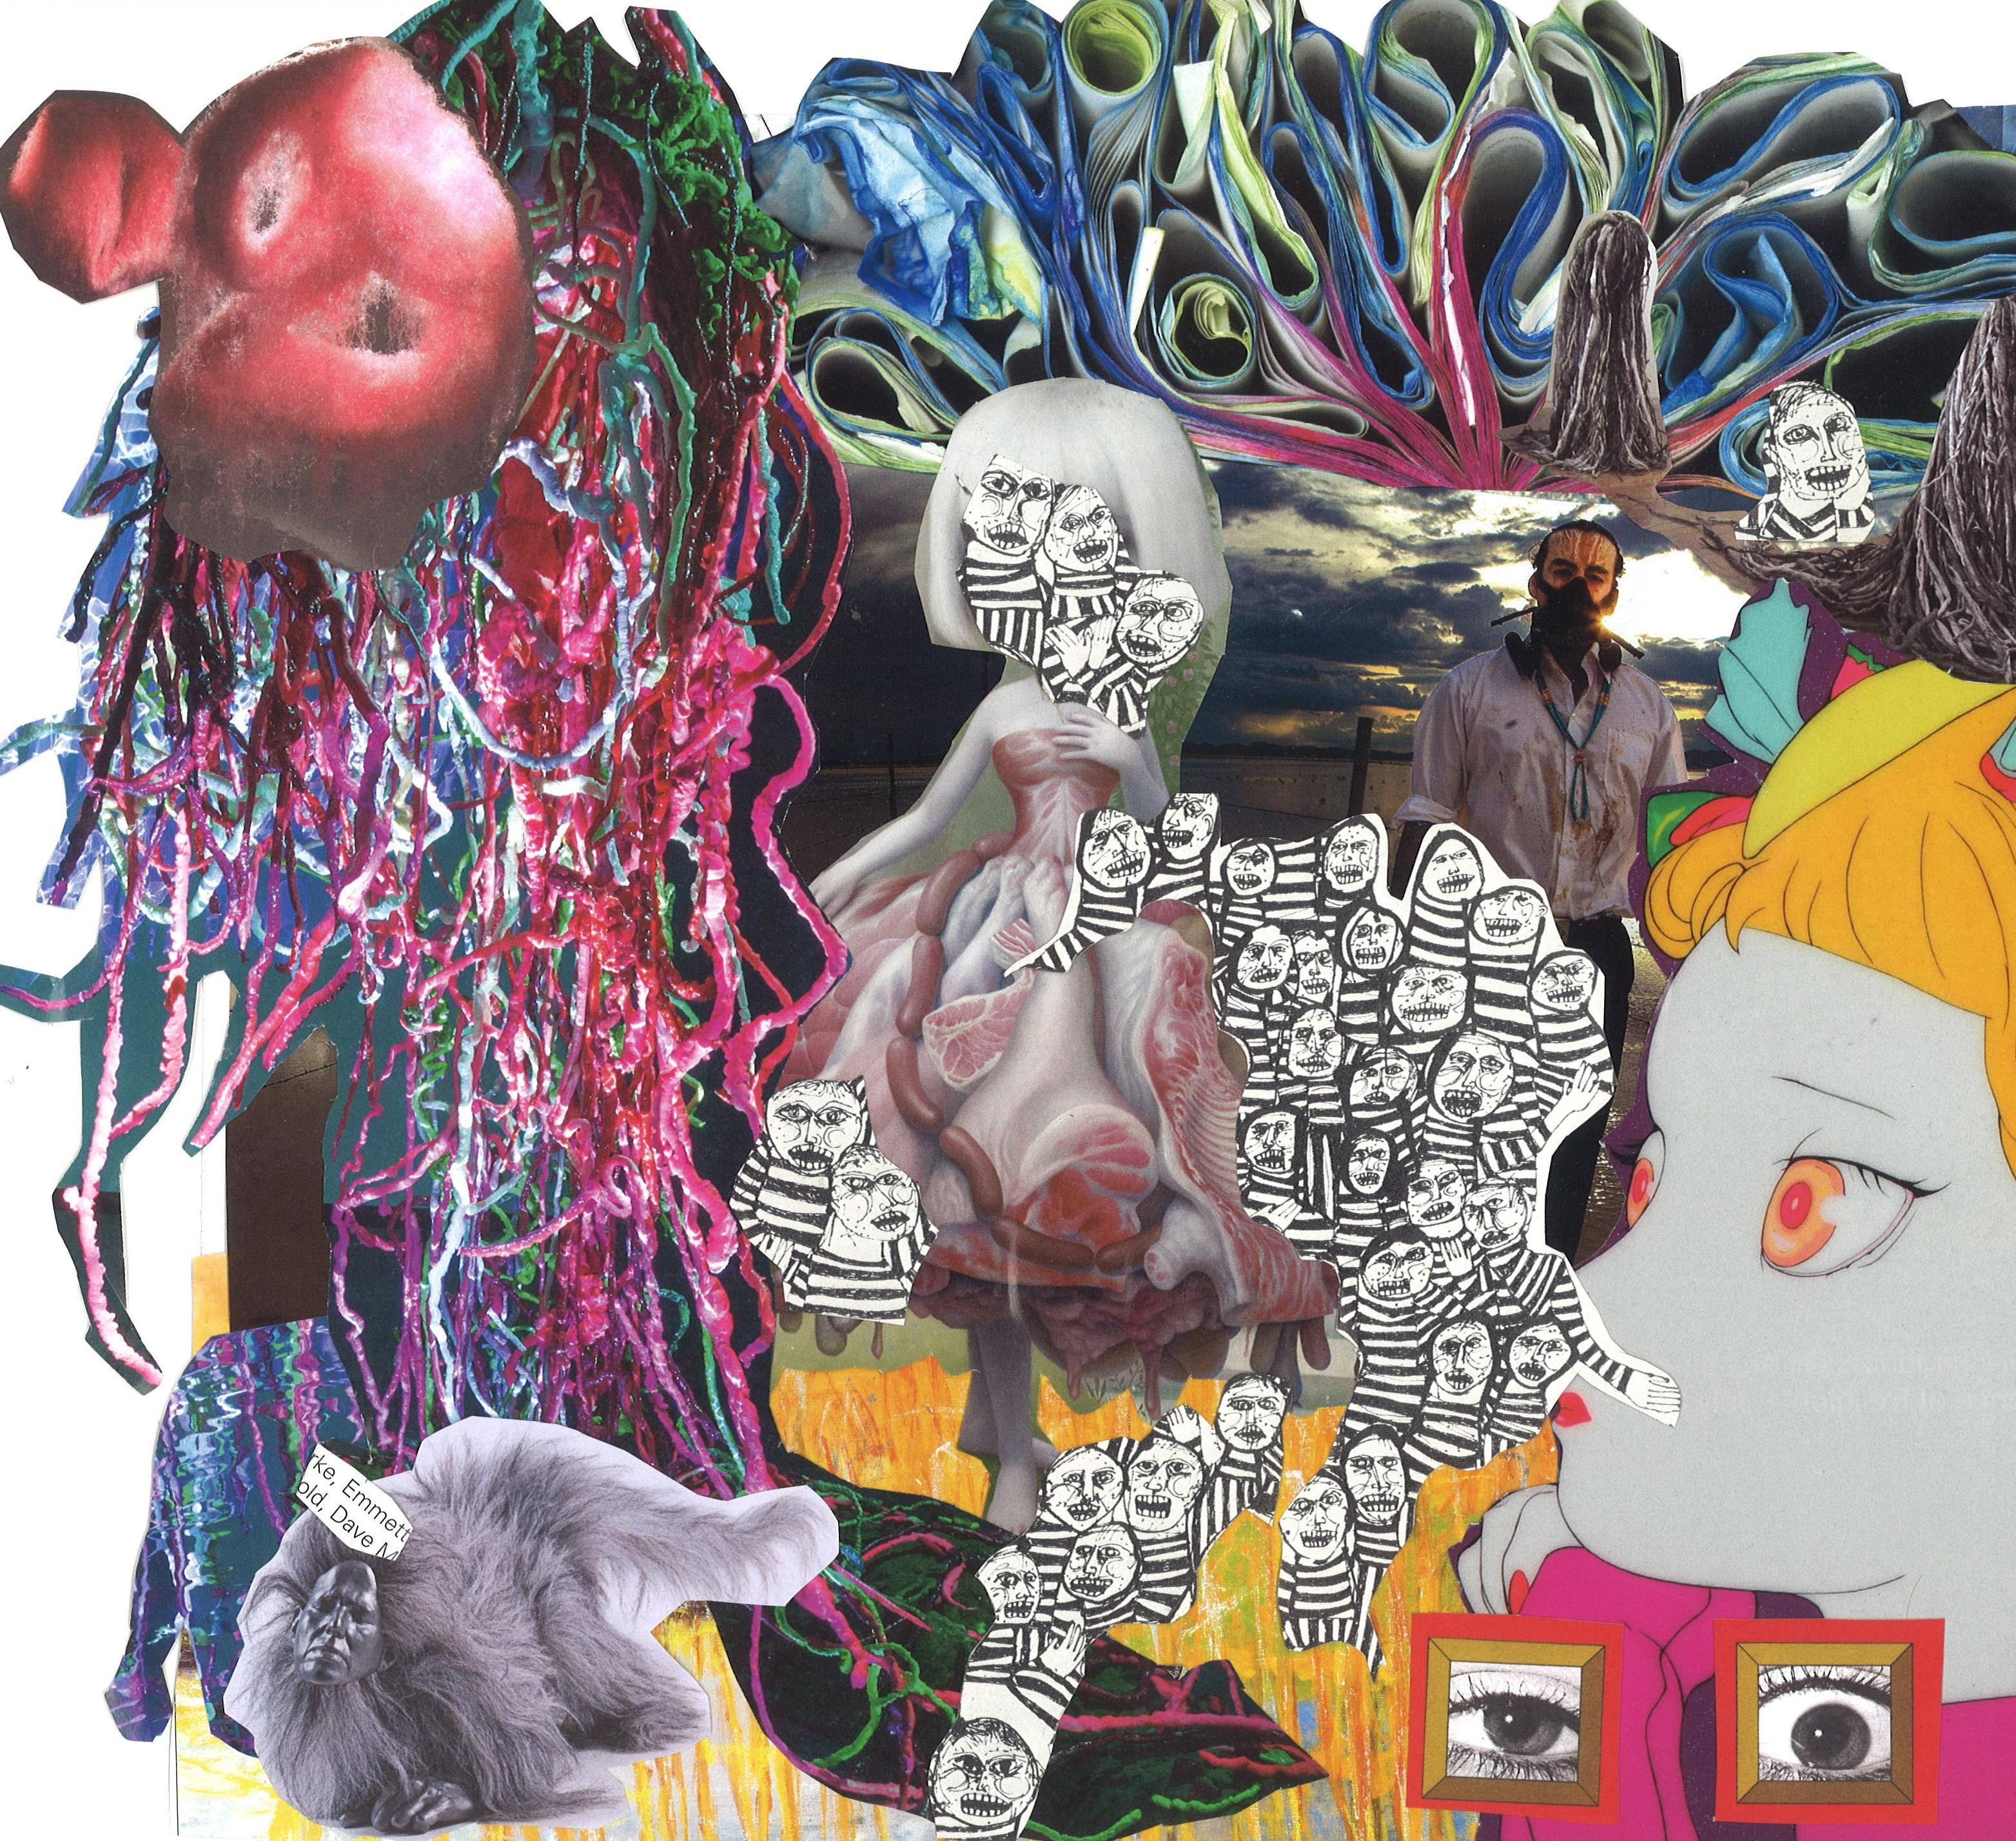 This colorful collage of cutout photographs and drawings includes images of a pom-pom, folded paper, black-and-white drawings, and a man wearing a half-face respirator in front of a cloudy sky.